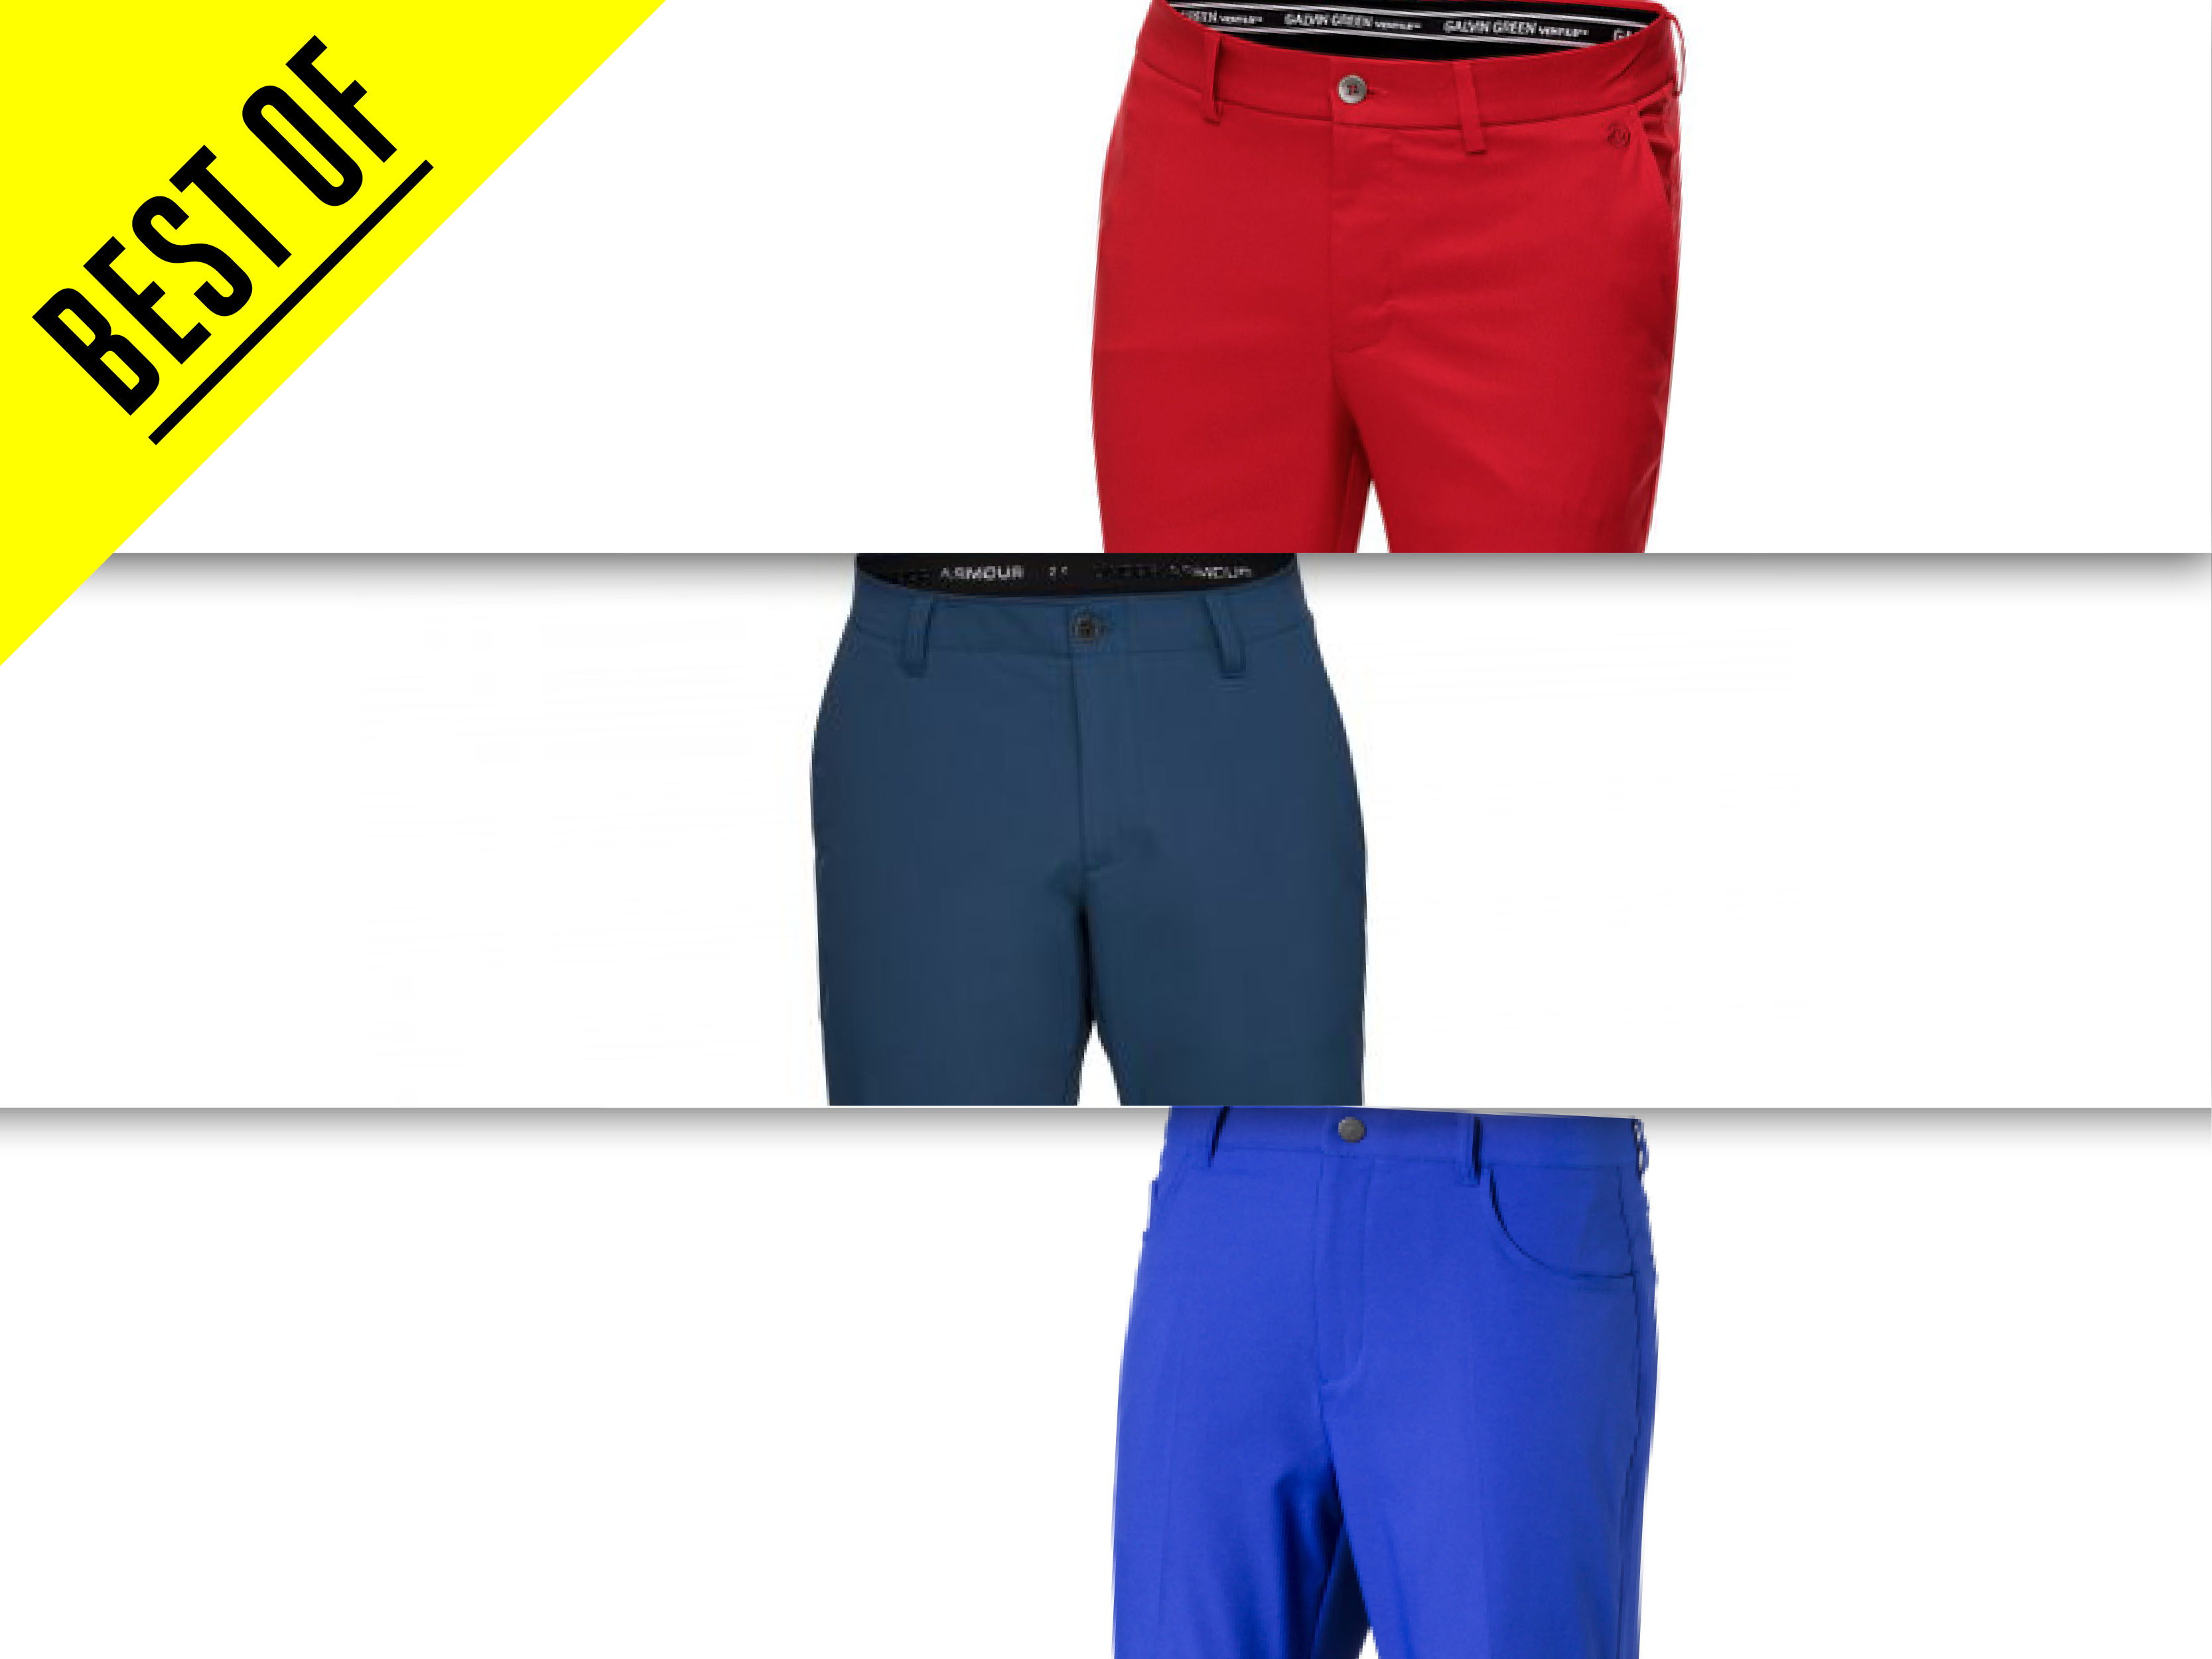 fb4f0c83 Best Golf Trousers 2019 - Perfect your look on the course this season